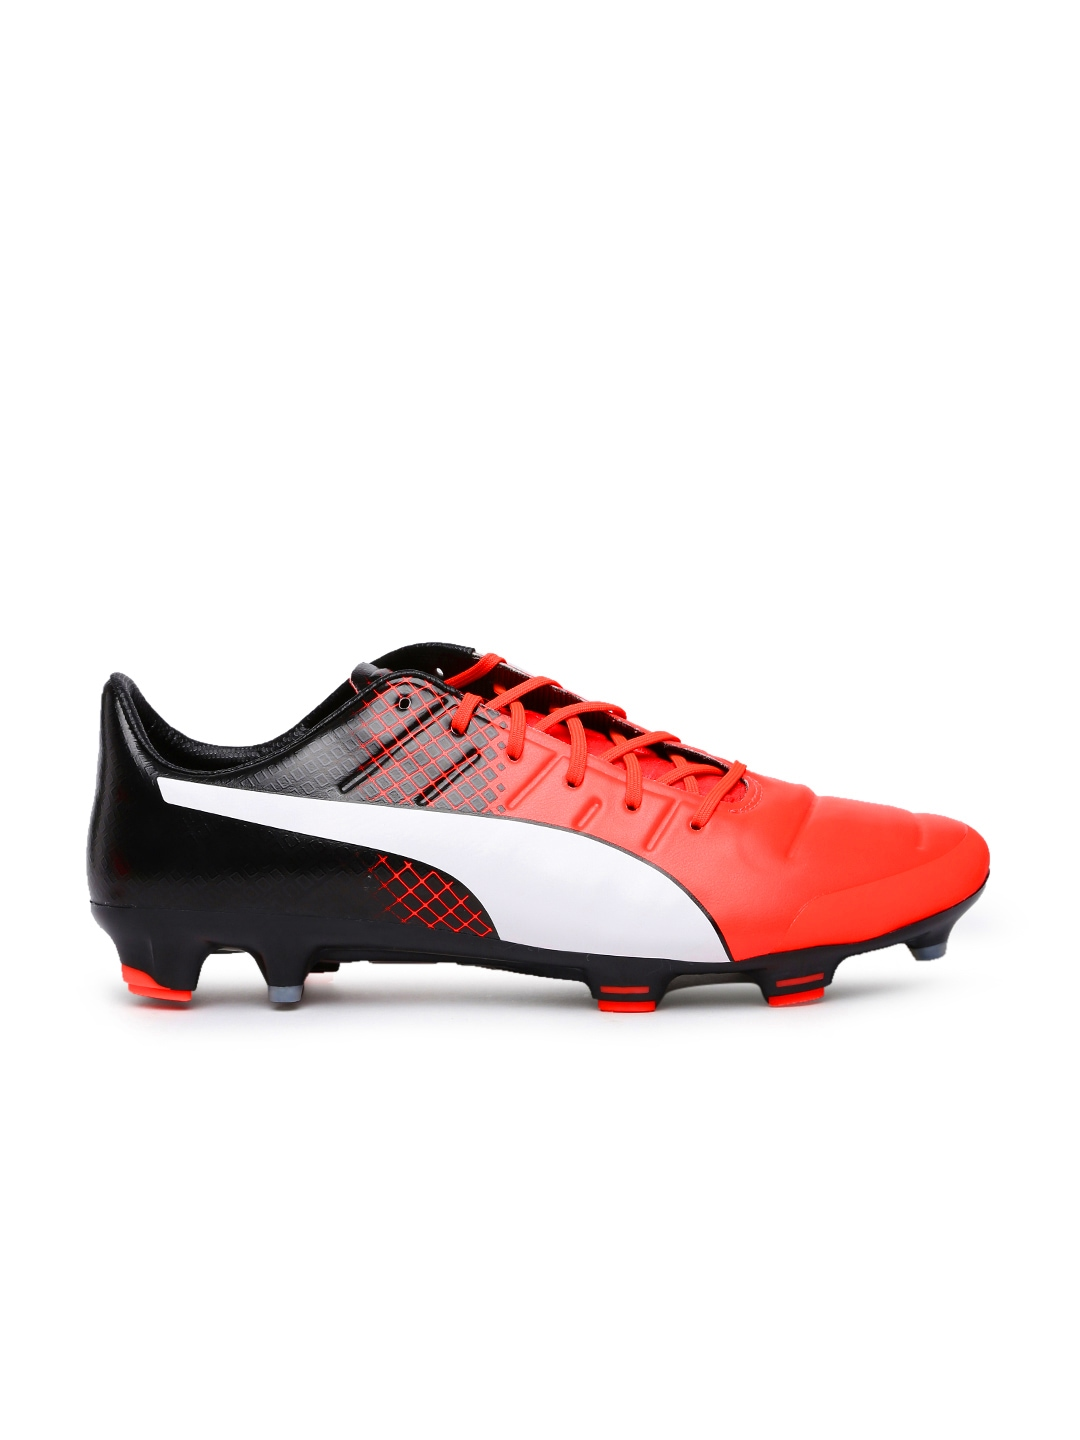 9d777c0696d puma evopower 1.3 45 cheap   OFF76% Discounted